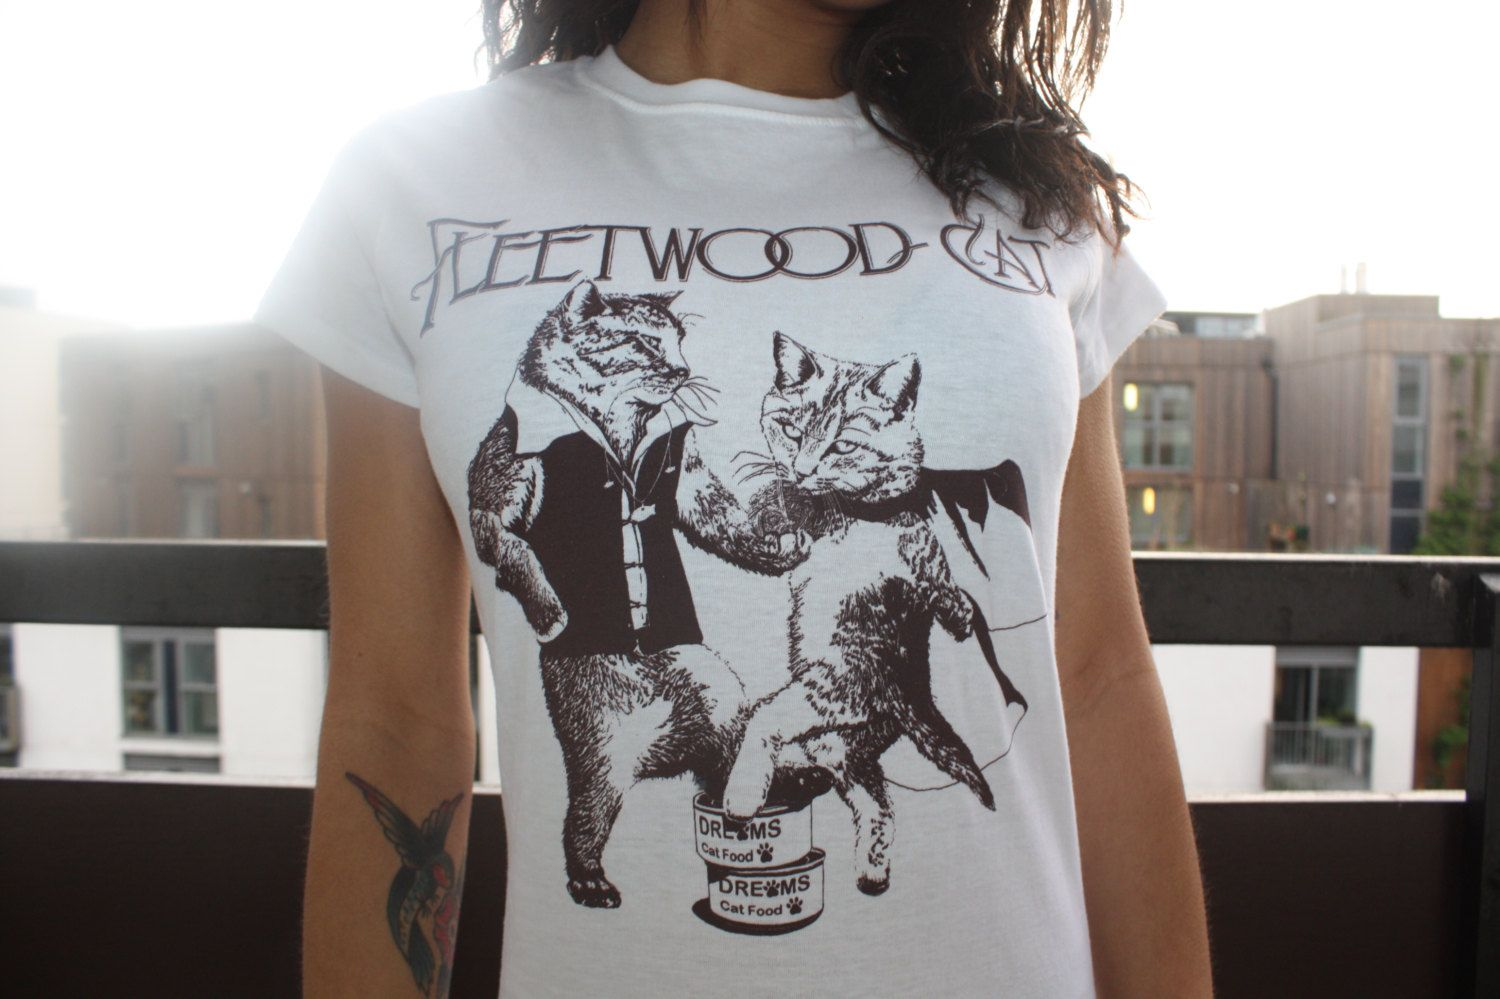 fleetwood cat - fleetwood mac rumours tribute t shirt with kittens - exclusive to us - hand drawn art work limited screenprint run by JackalopeClothing on Etsy https://www.etsy.com/listing/172934161/fleetwood-cat-fleetwood-mac-rumours